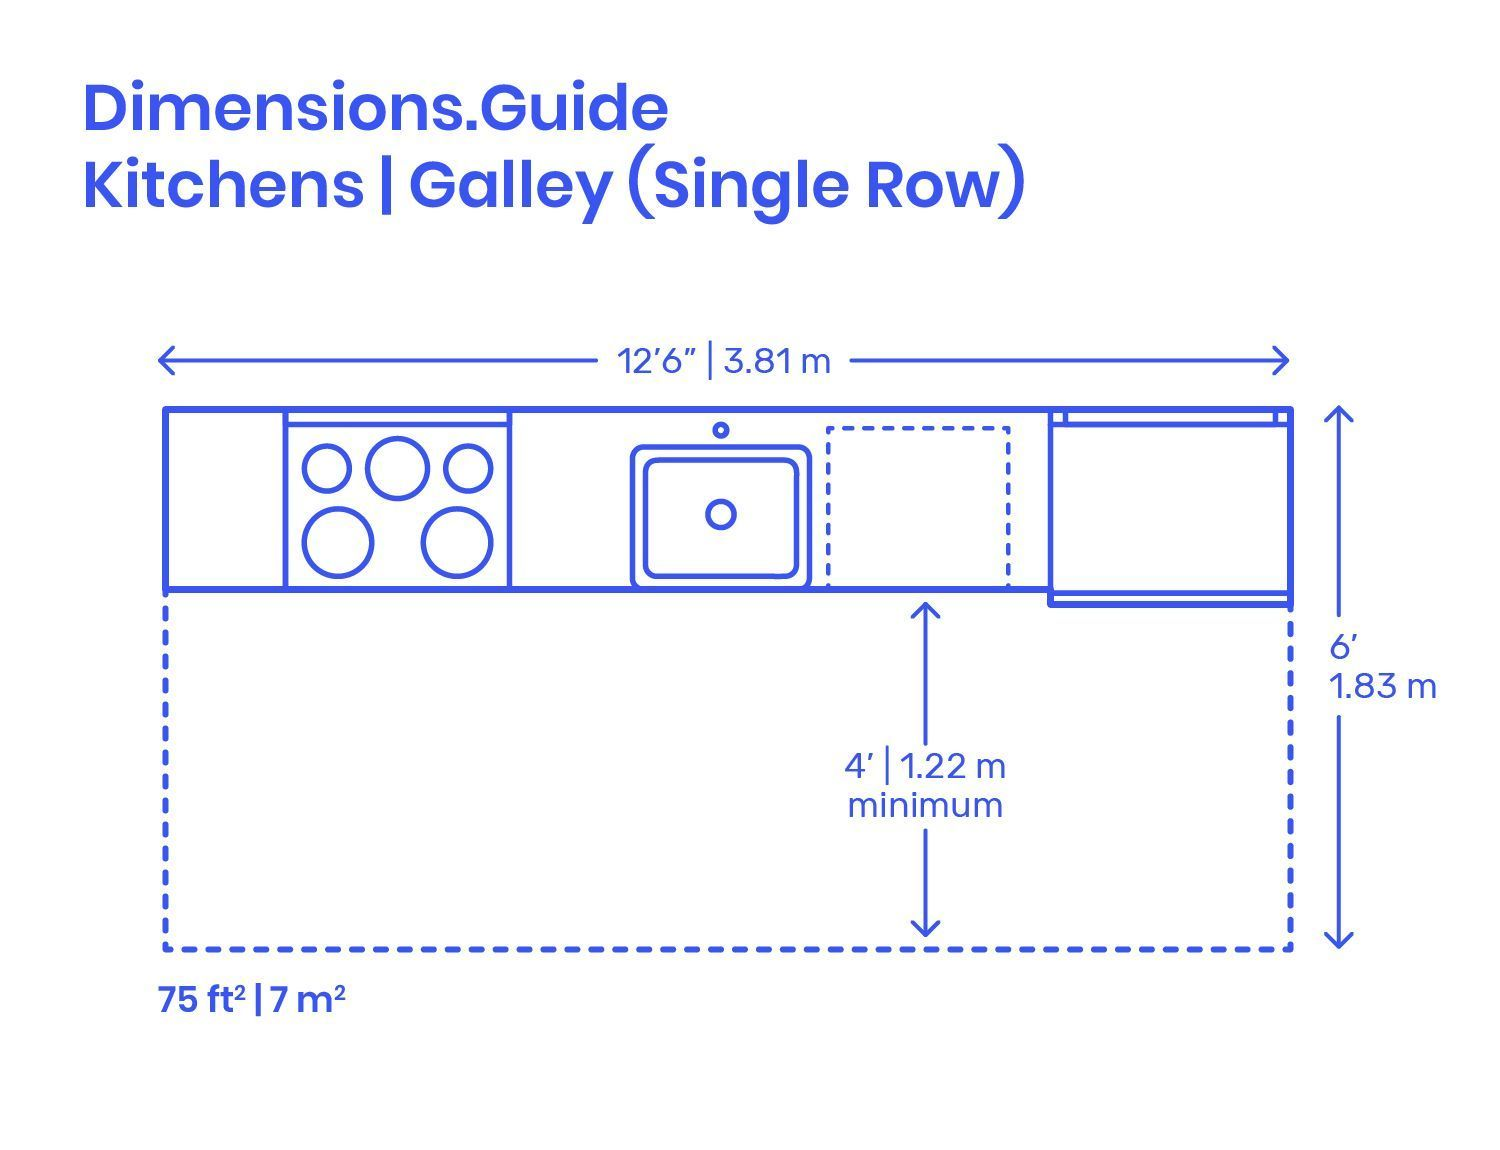 Galley | Single Row Kitchen Layout #galleykitchenlayouts Single Row Galley Kitchen layouts are space efficient designs that combine kitchen fixtures into a single optimized linear bar. Single Row Galley Kitchens have lengths that range from 7'-12.5' | 2.1-3.8 m and should be planned with an overall area of 75 ft2 | 7 m2. Downloads online #kitchens #home #homedesign #interiordesign #layouts #galleykitchenlayouts Galley | Single Row Kitchen Layout #galleykitchenlayouts Single Row Galley Kitche #galleykitchenlayouts